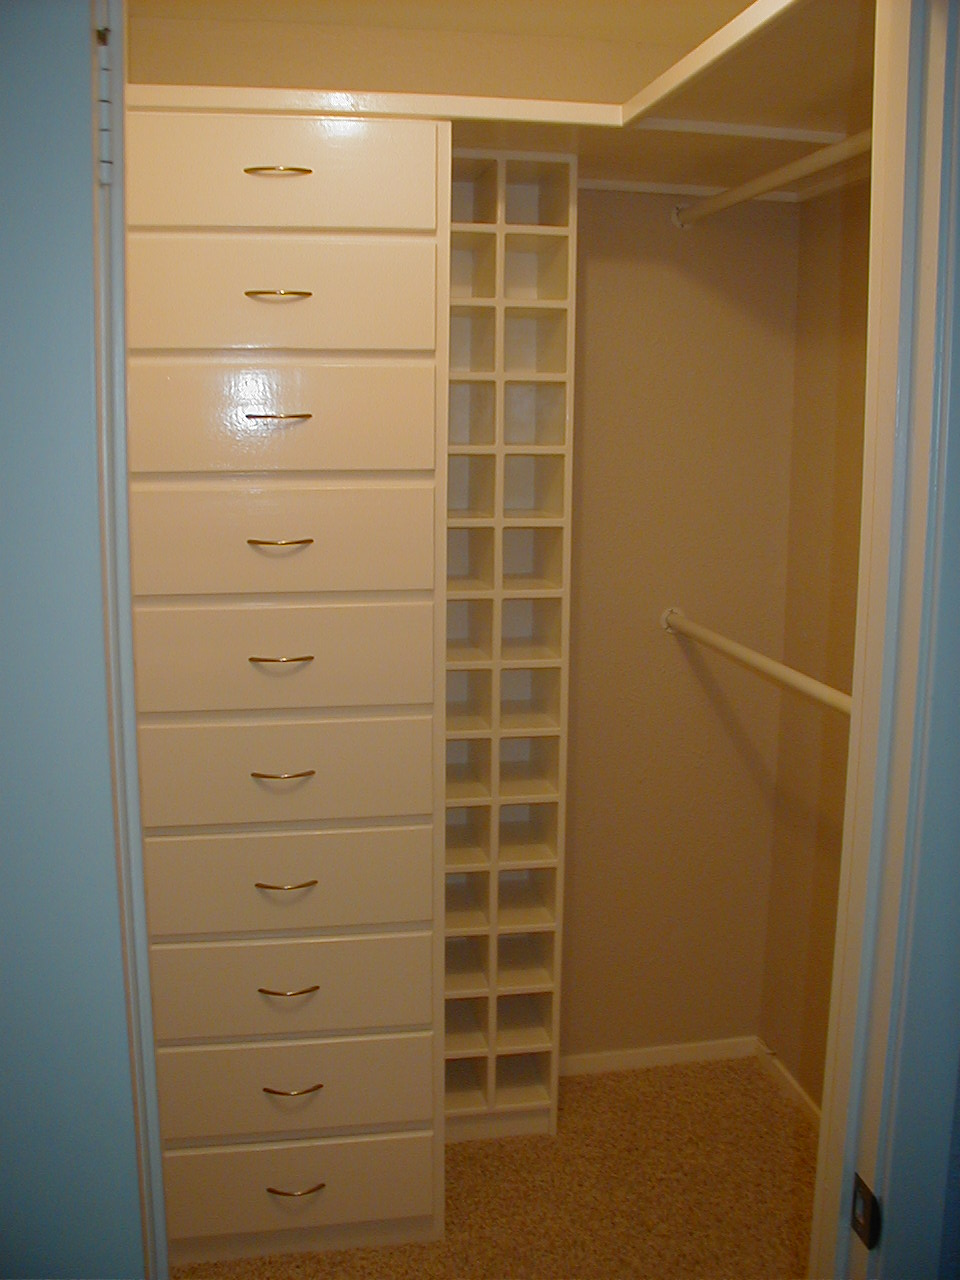 Bedroom closet organizer Photo - 1